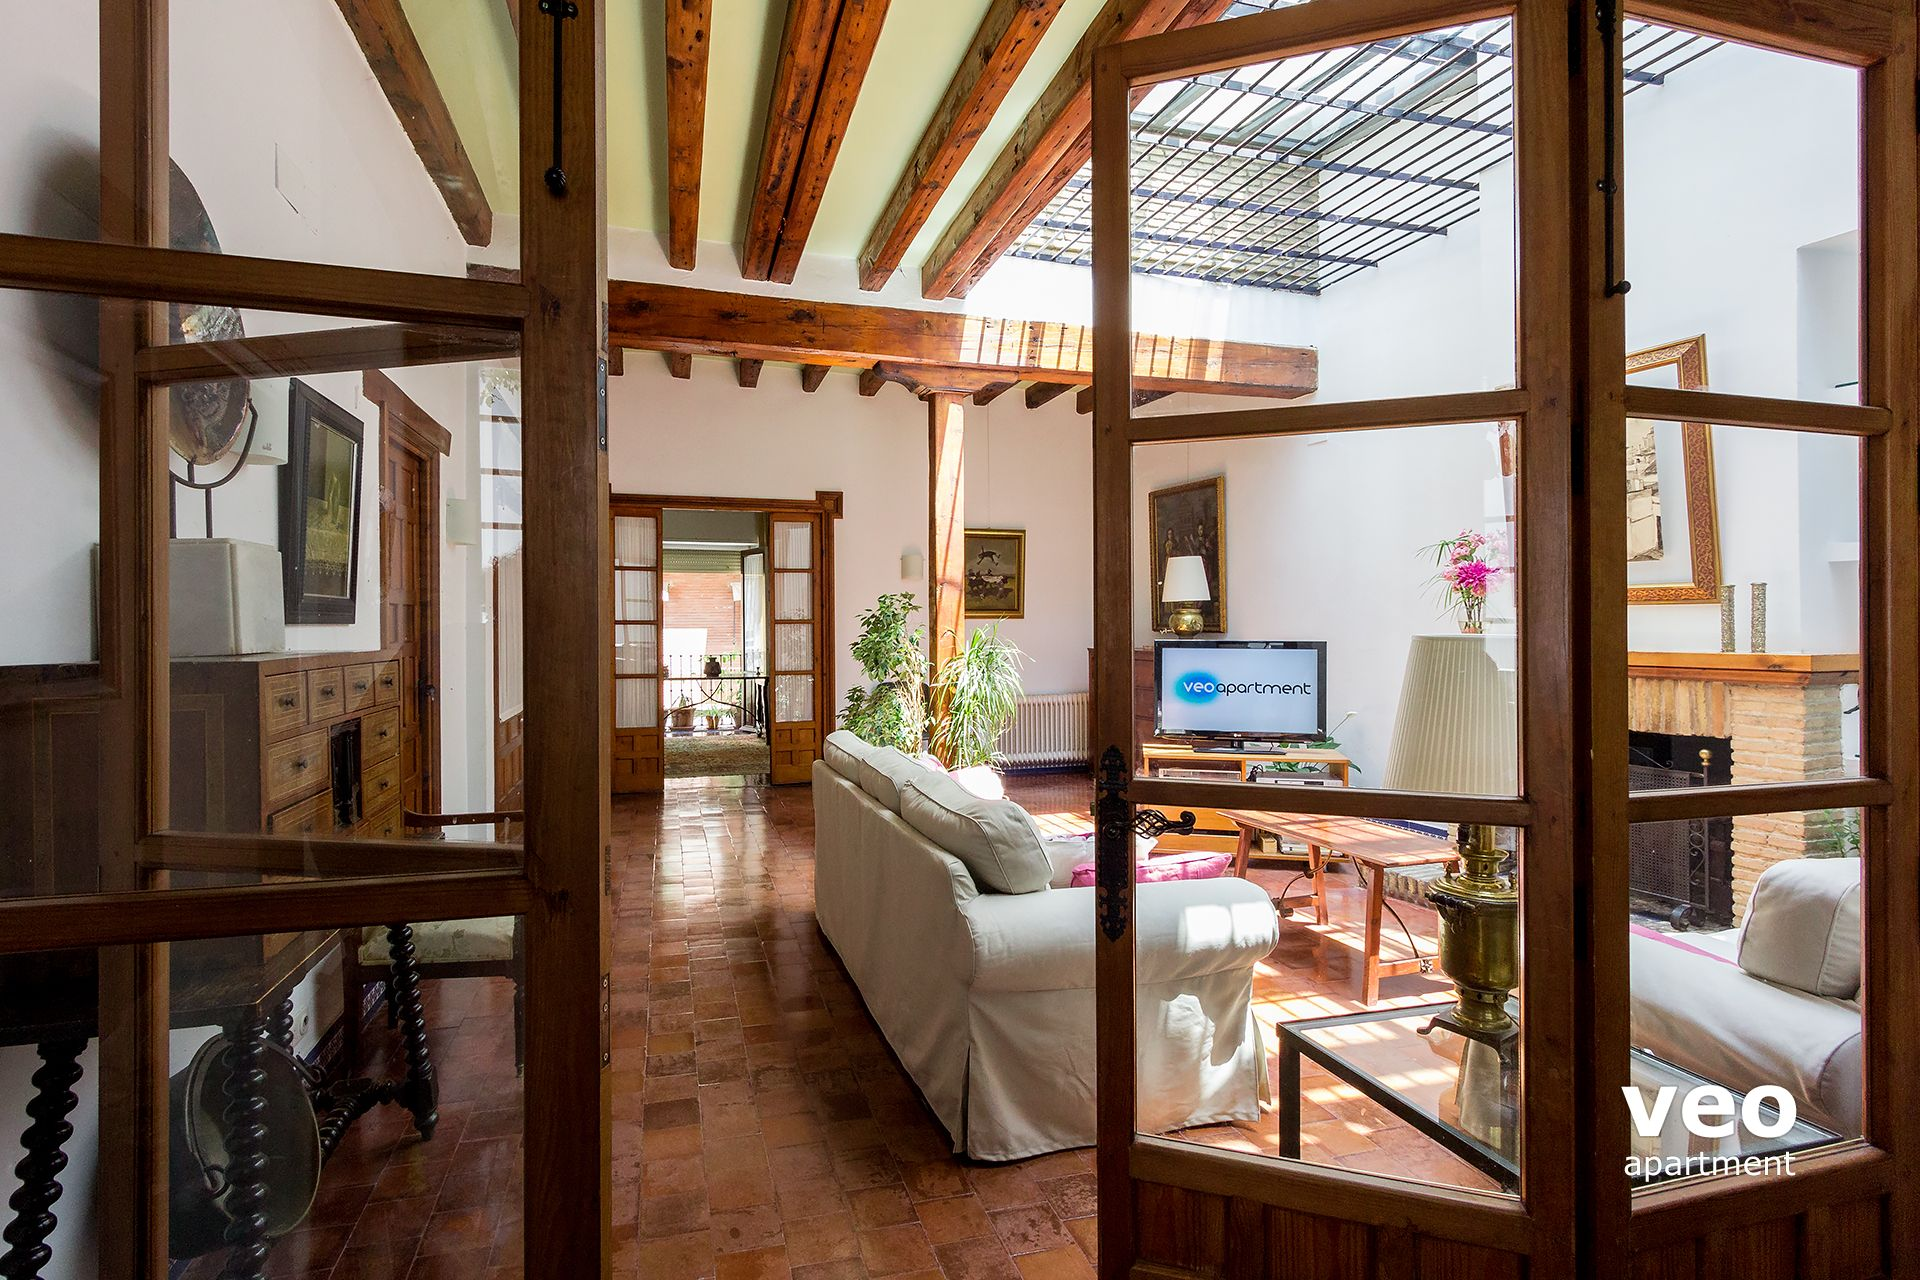 Seville Apartment Monsalves Street Seville Spain